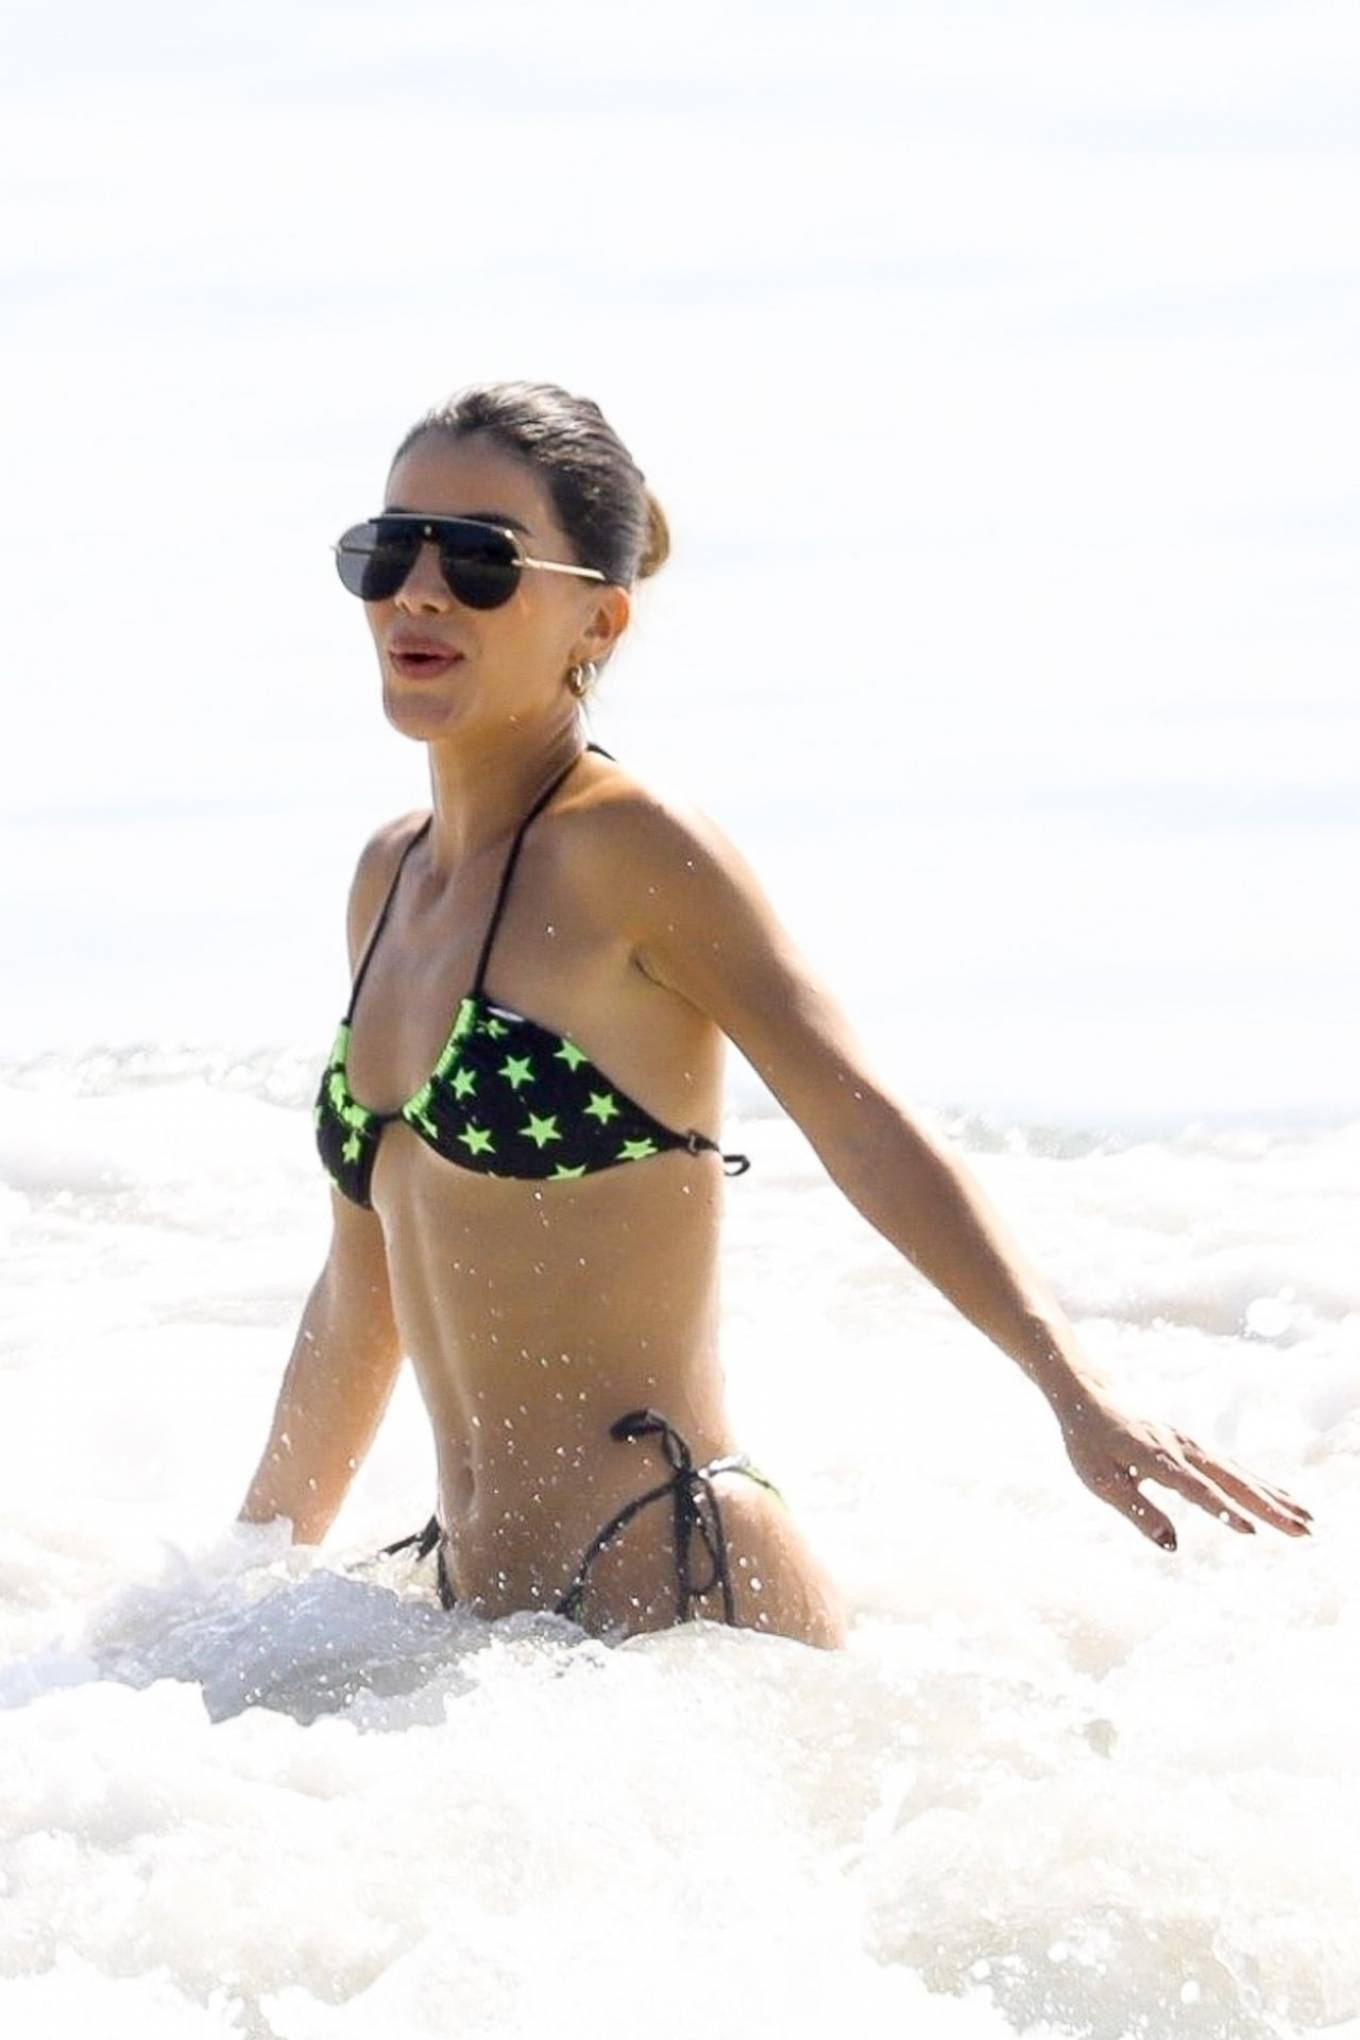 Camila Coelho, black bikini top, black sunglasses, display, neon green star printed, sexy, spaghetti straps, very low neck, skimpy. Camila Coelho rocking a plunging black bikini top with spaghetti straps